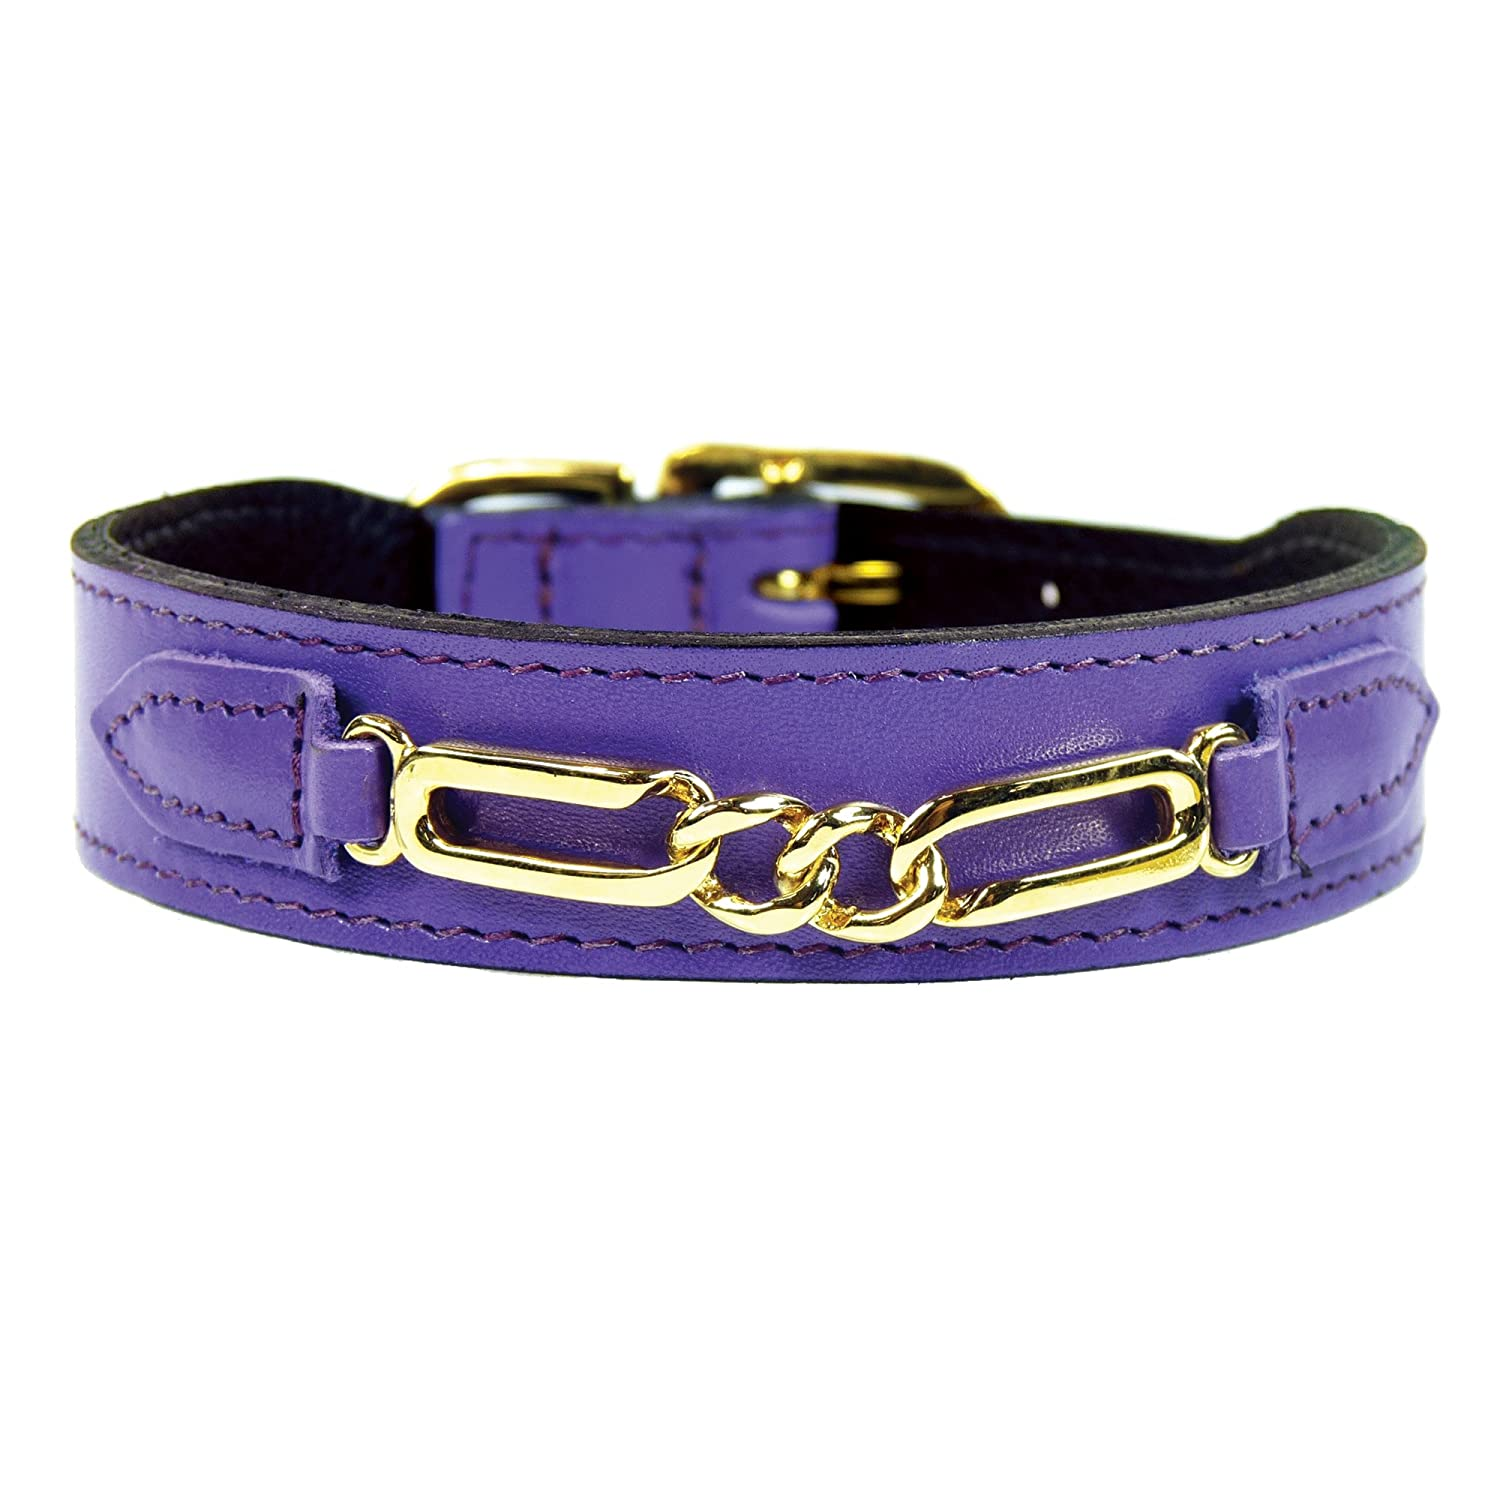 centro commerciale online integrato professionale Hartman & rosa Central Park Collection Collection Collection Dog Collar, UVA, 8 – 25,4 cm  economico e alla moda